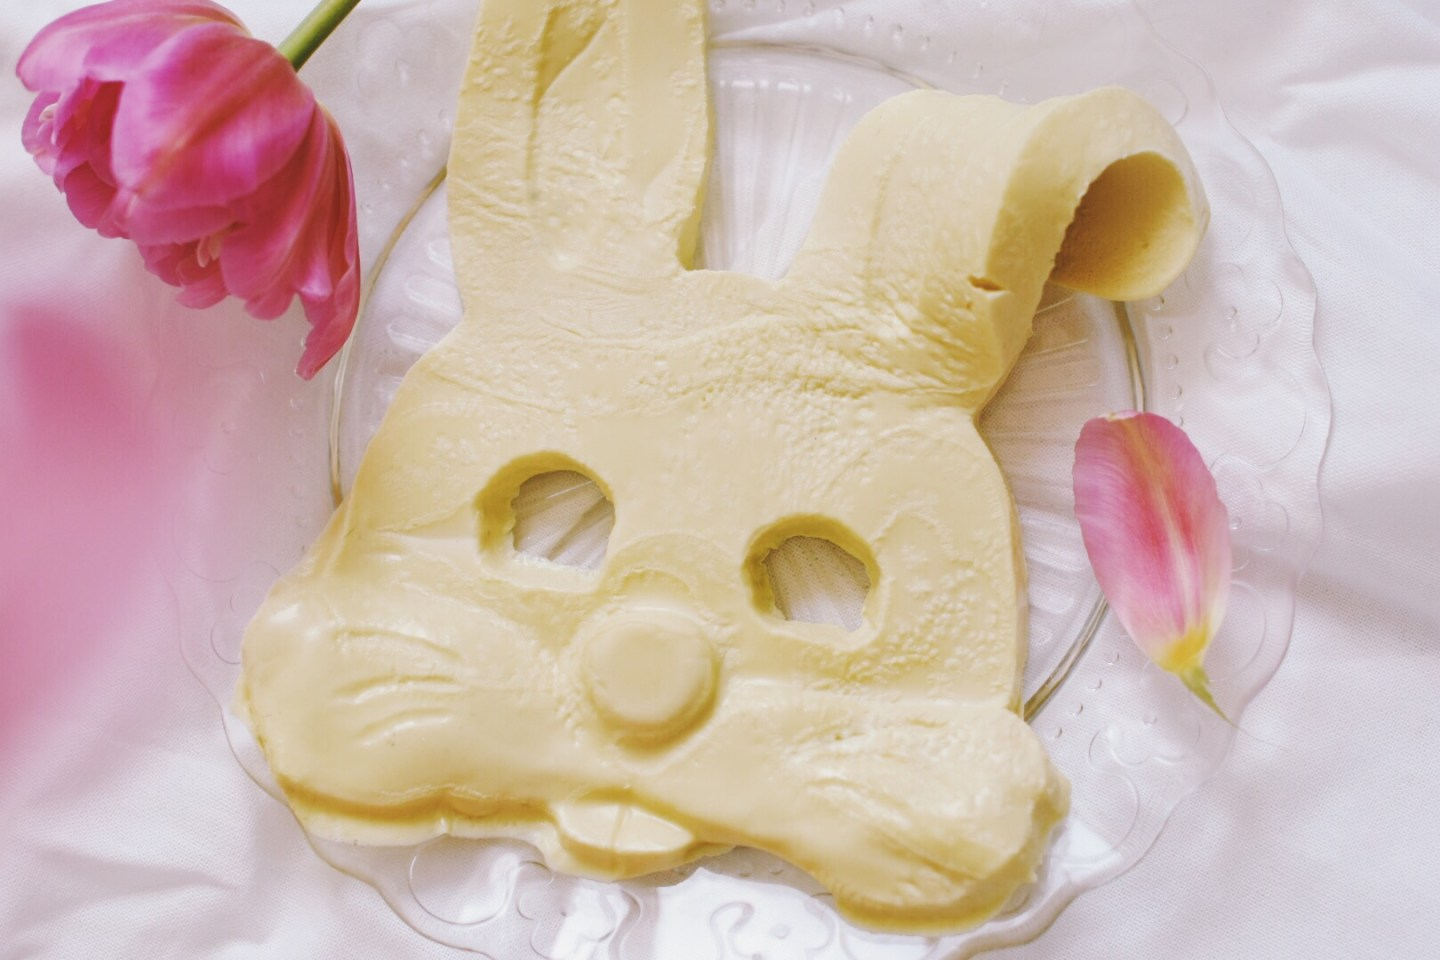 lush easter 2017 flopsy face wash jelly